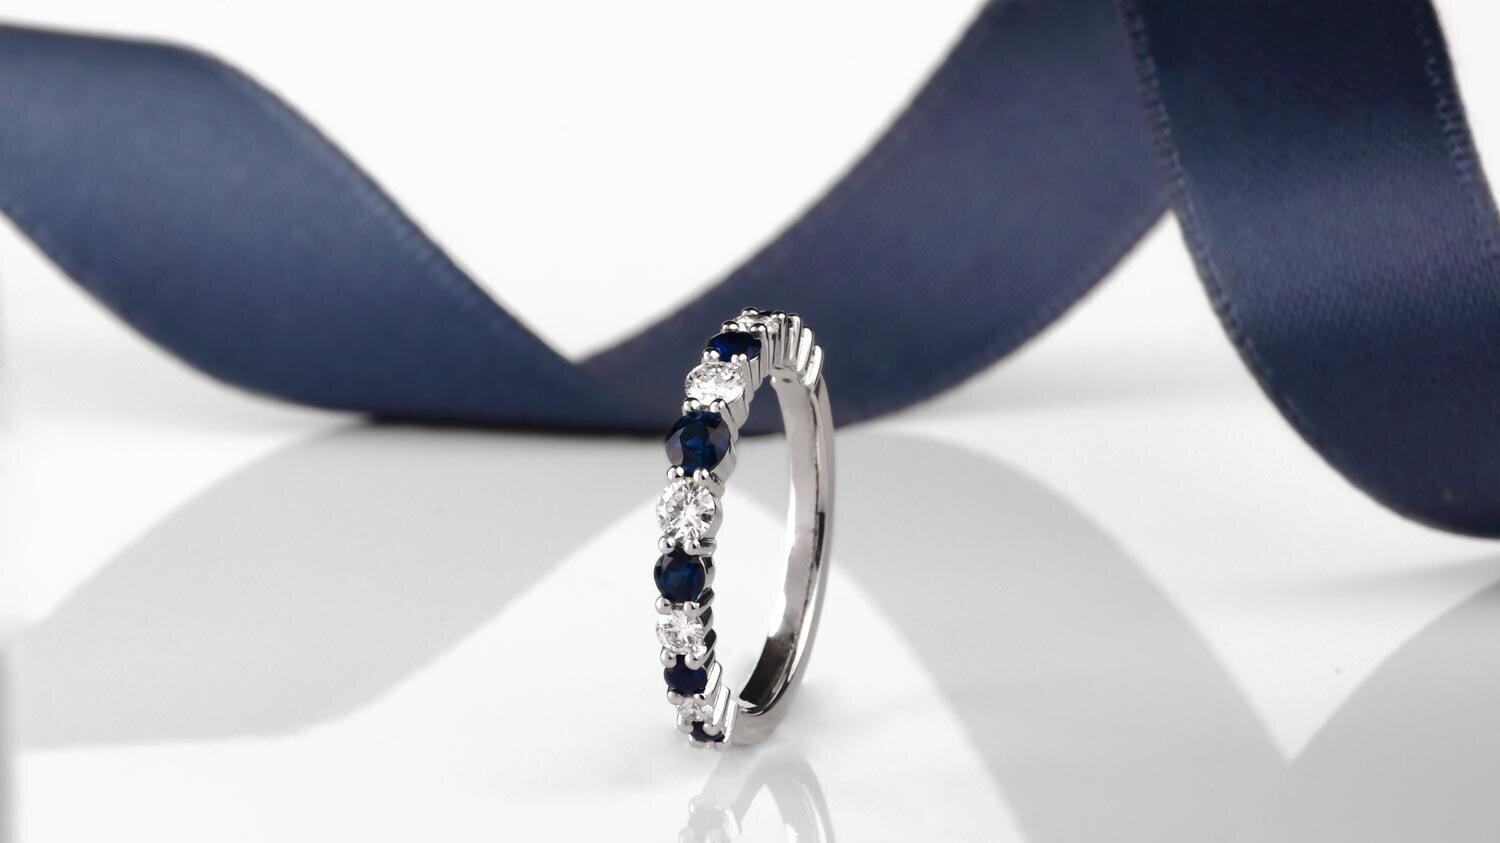 Innocence - The Innocence collection balancing perfectly the combination of diamonds and sapphires in perfect harmony.